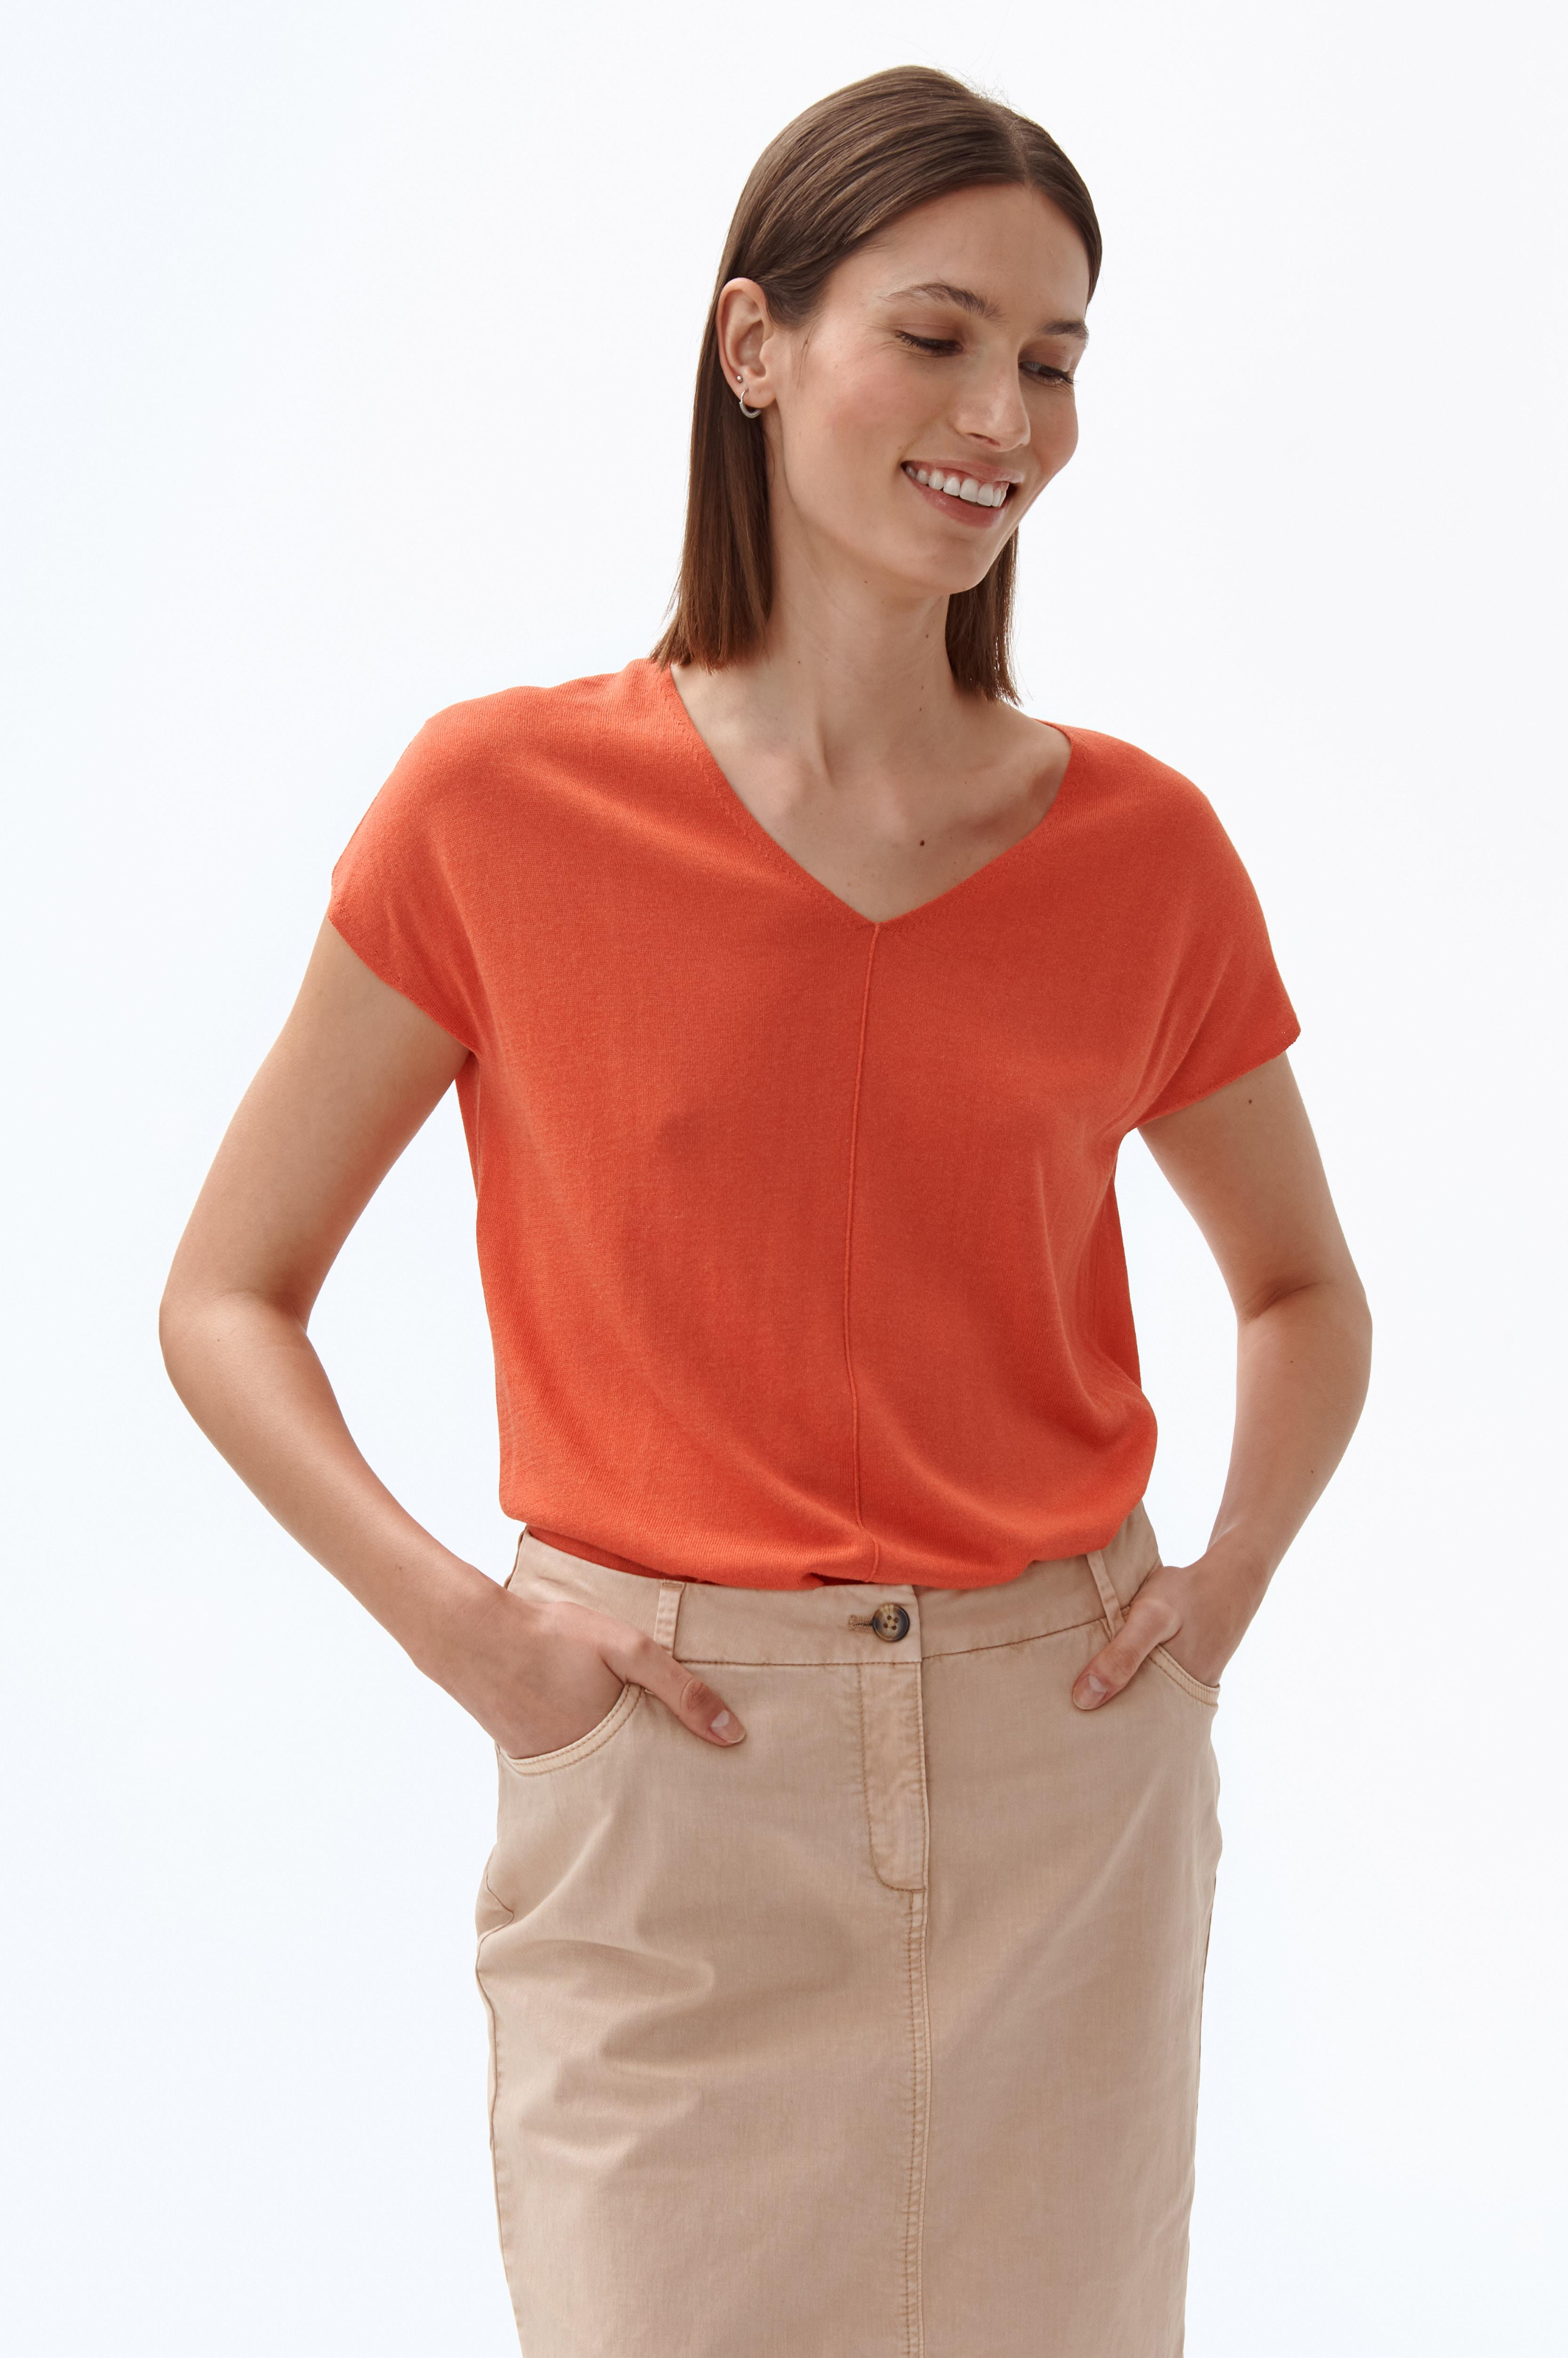 LADIES' LIGHT SLEEVE-LESS BLOUSE POMIRI